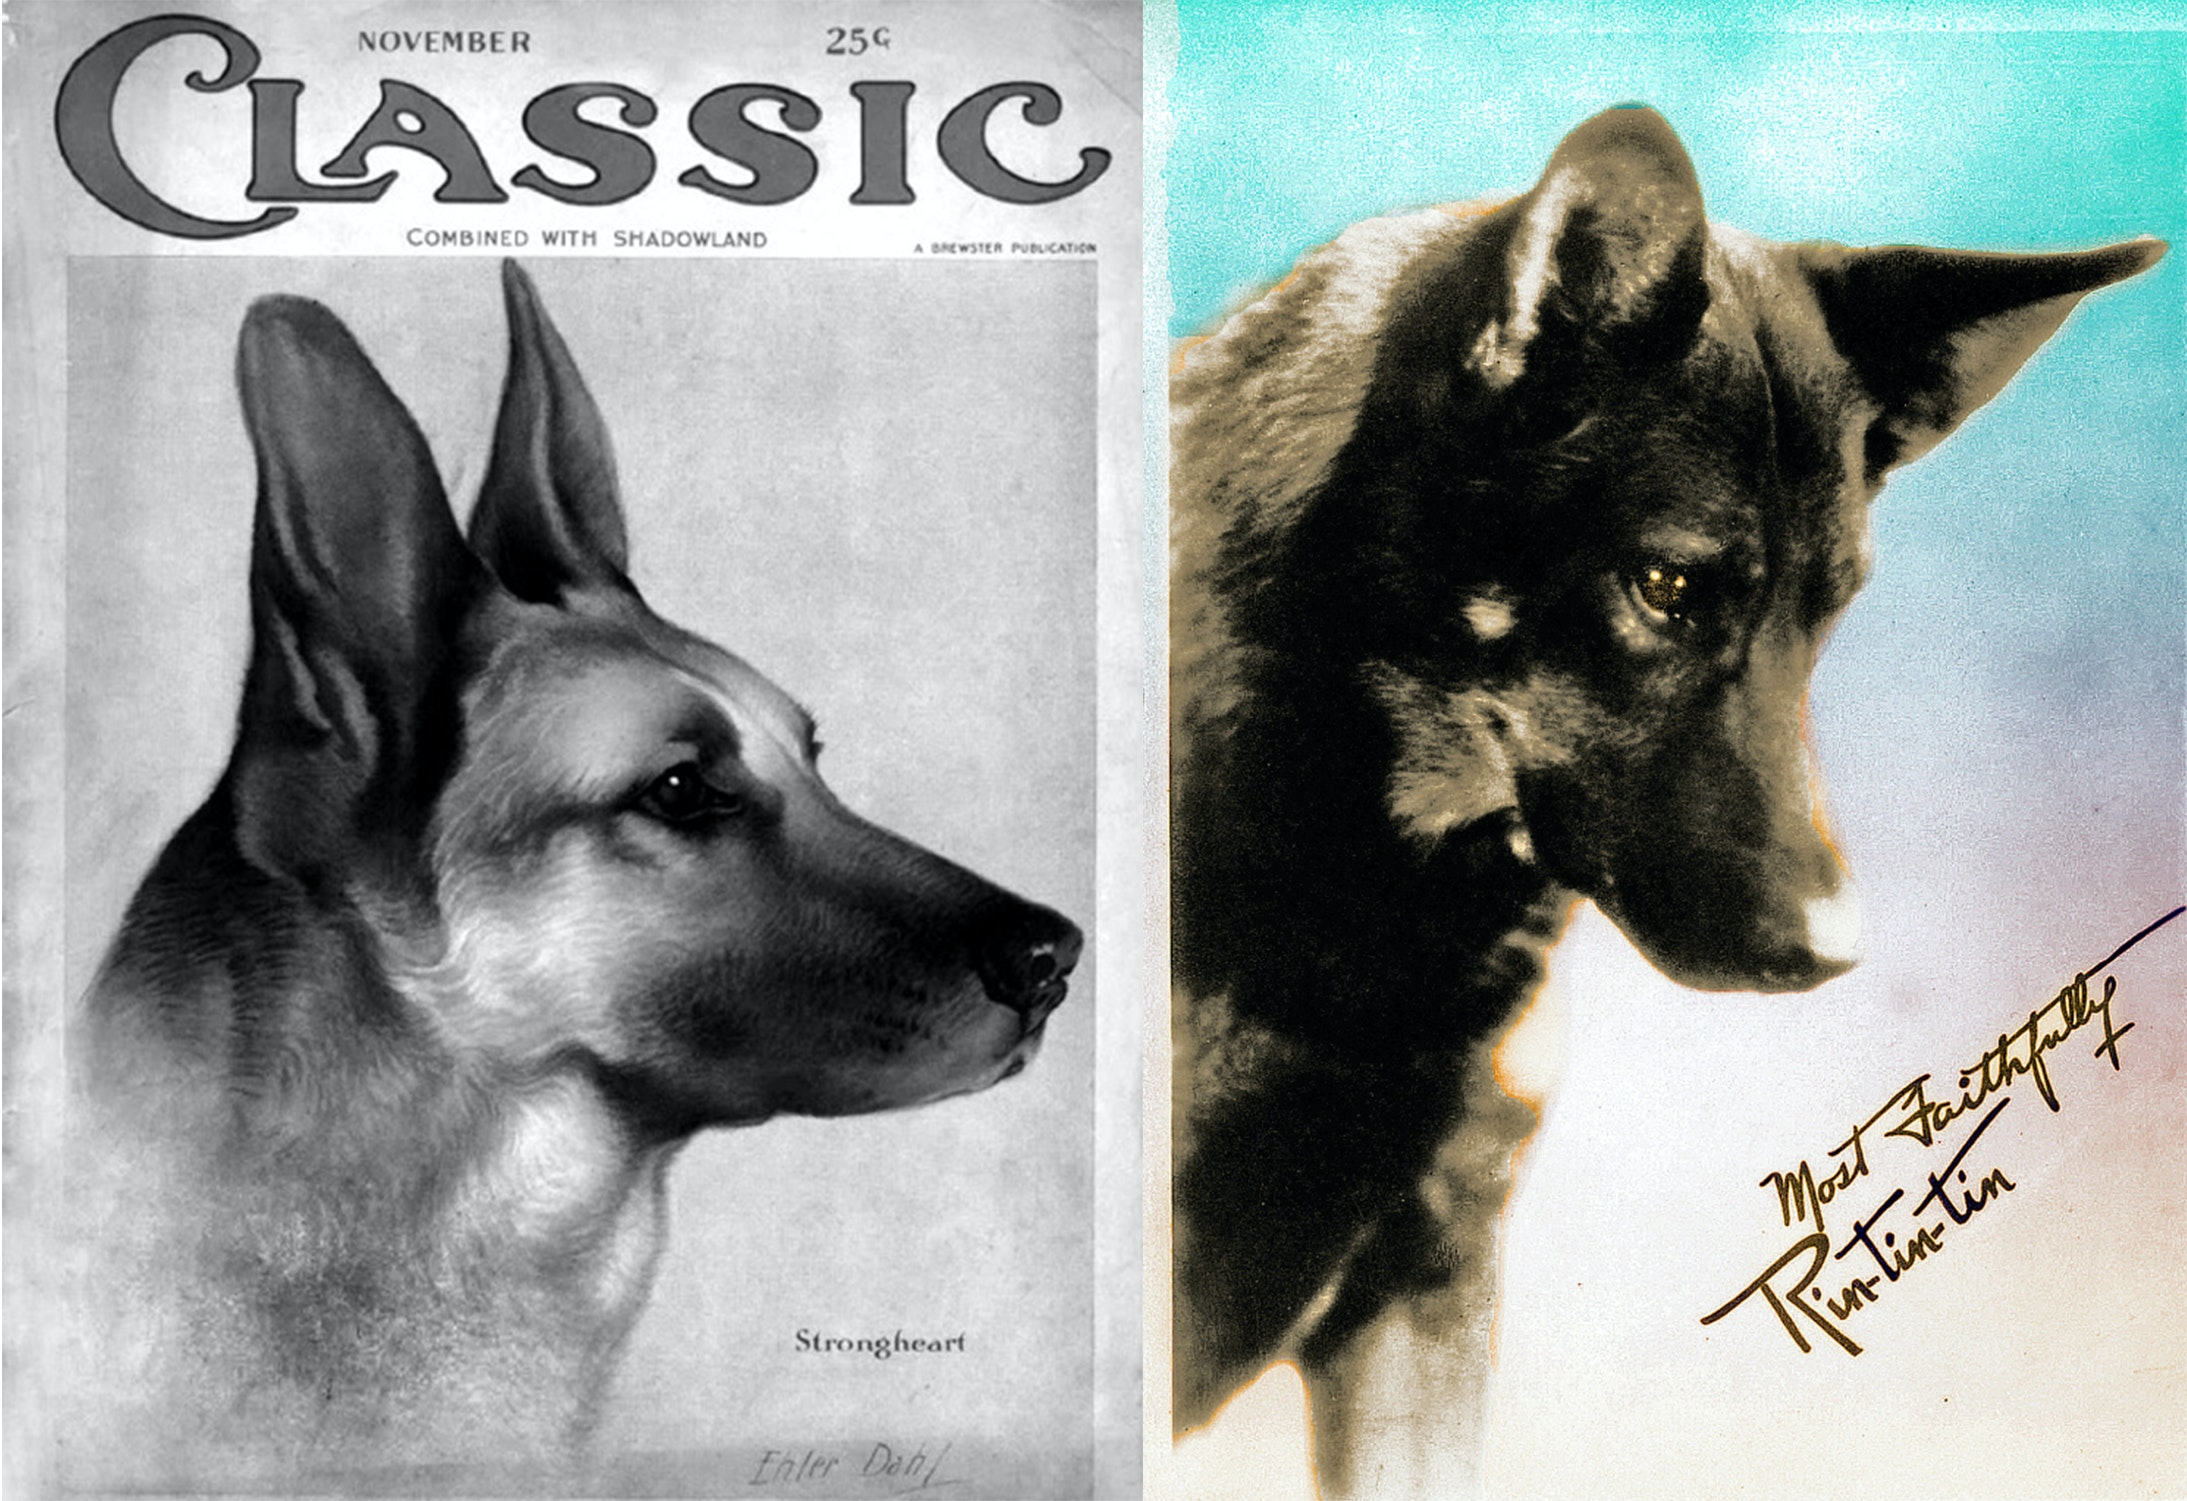 Side by side portrait photos of Strongheart and Rin TIn Tin